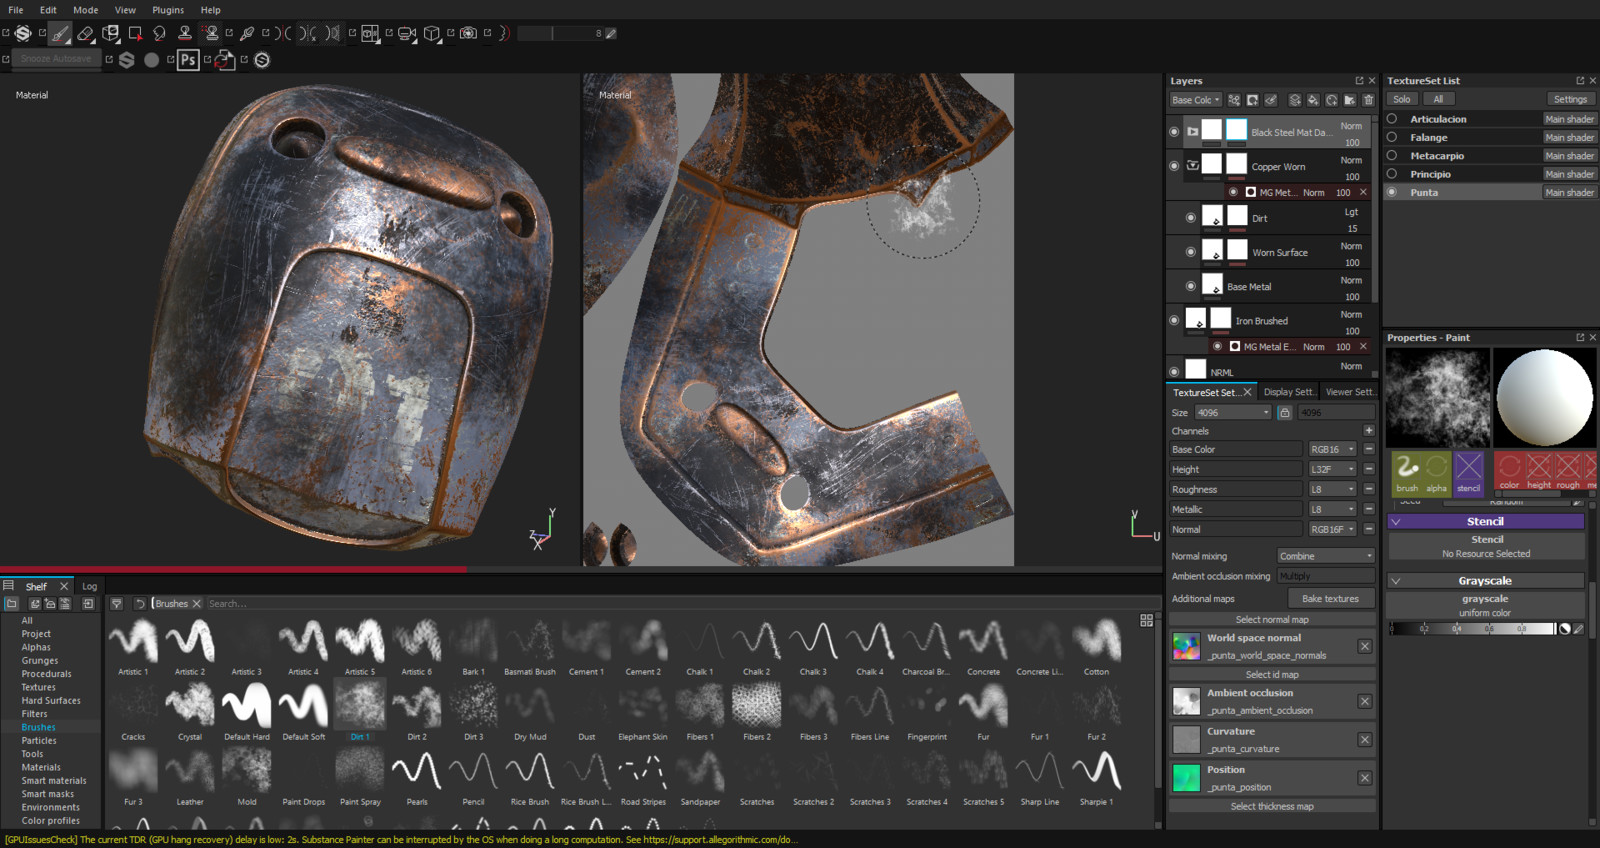 Working inside Substance painter on the mecha fingers